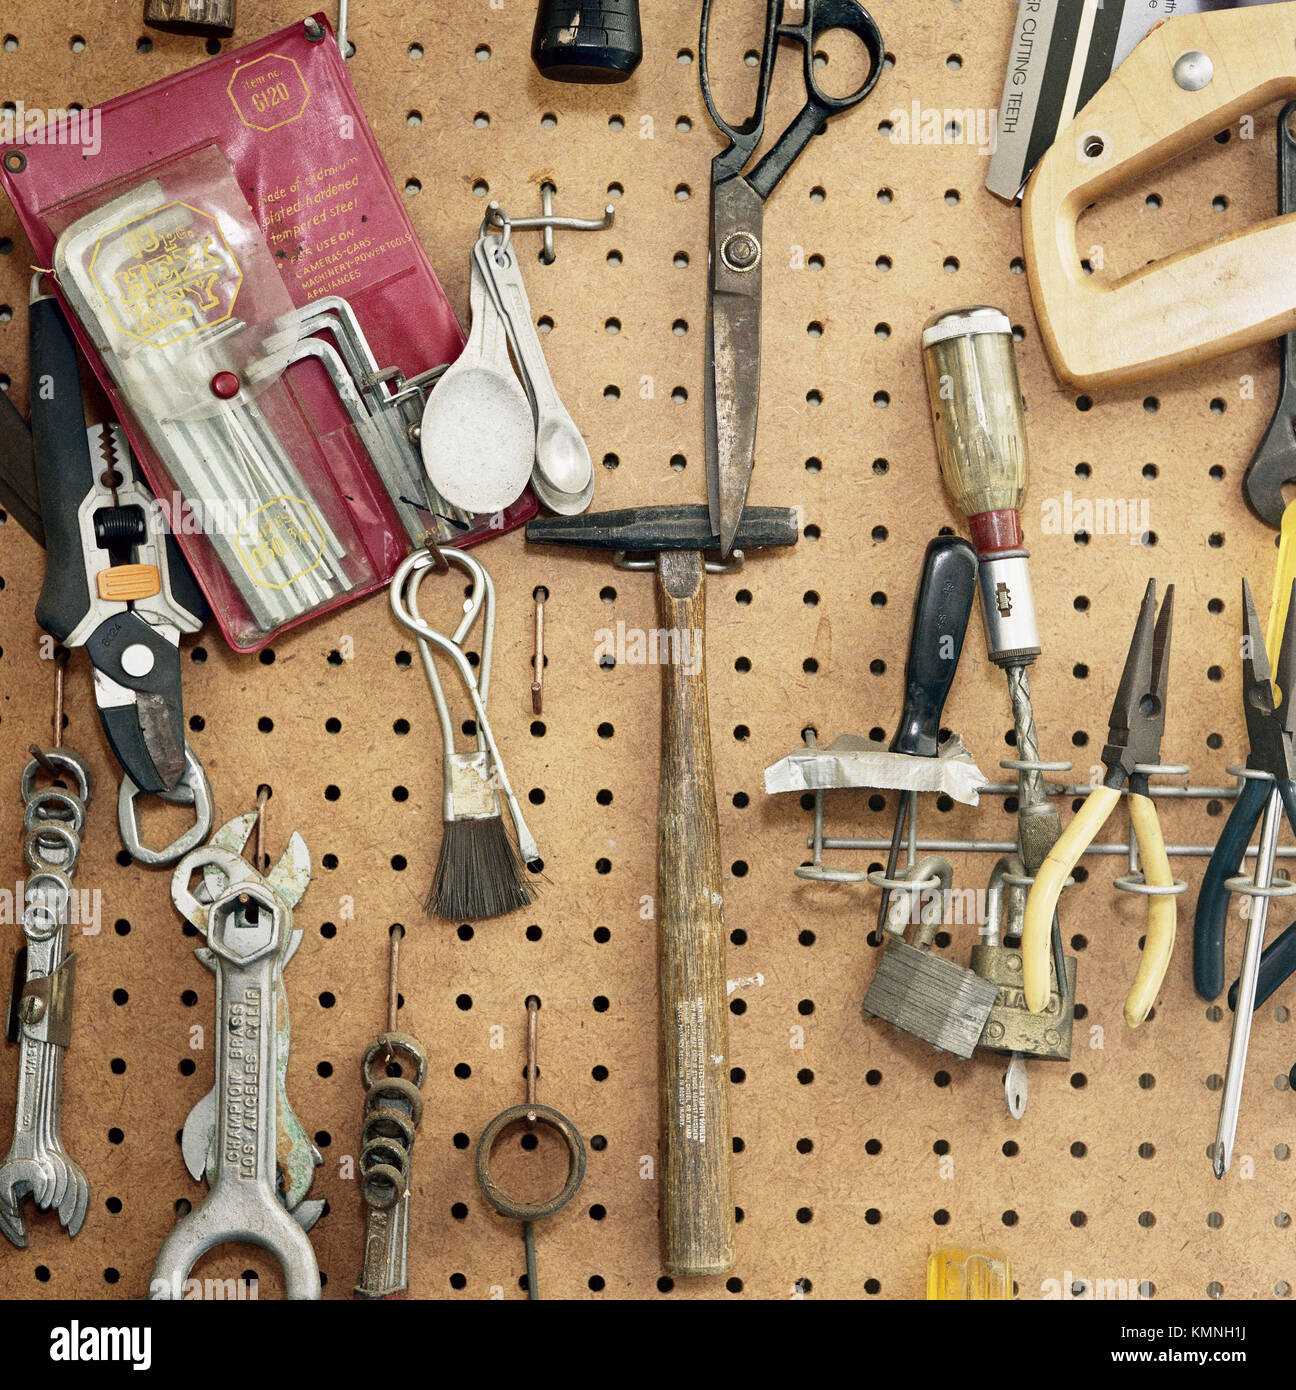 Tools hanging on pegboard - Stock Image